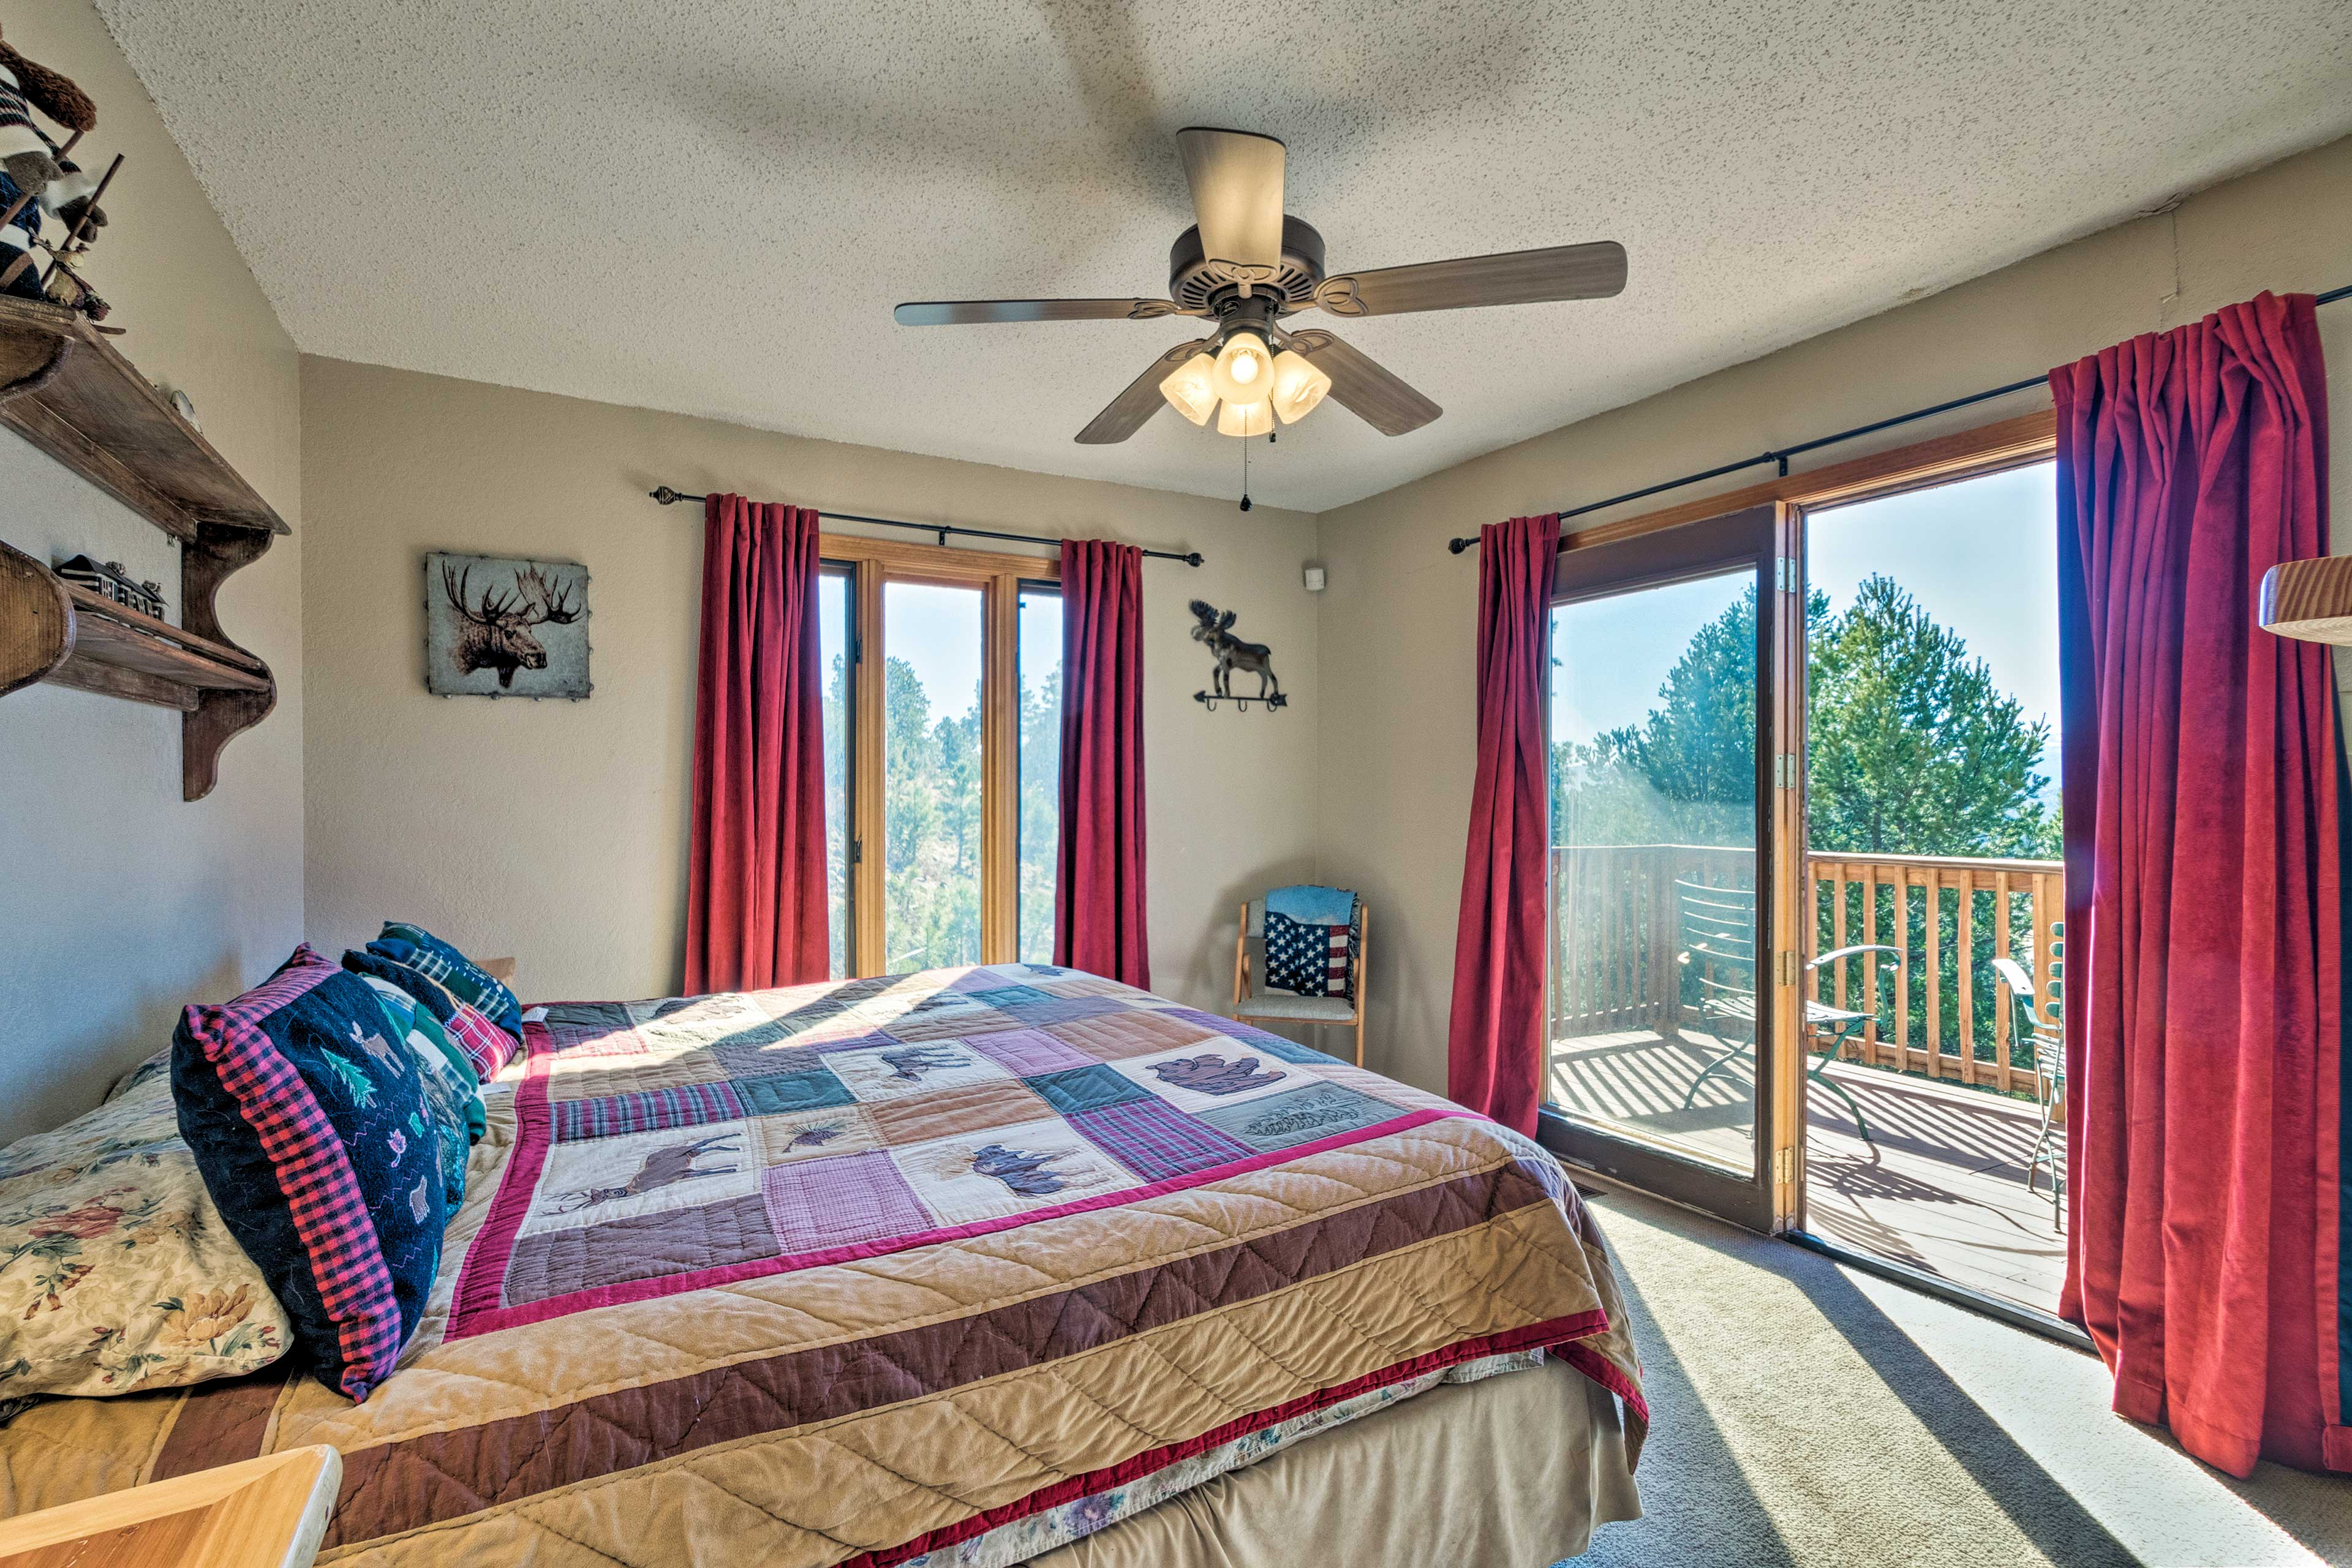 Sip your coffee on the balcony as you bask in the fresh mountain air.